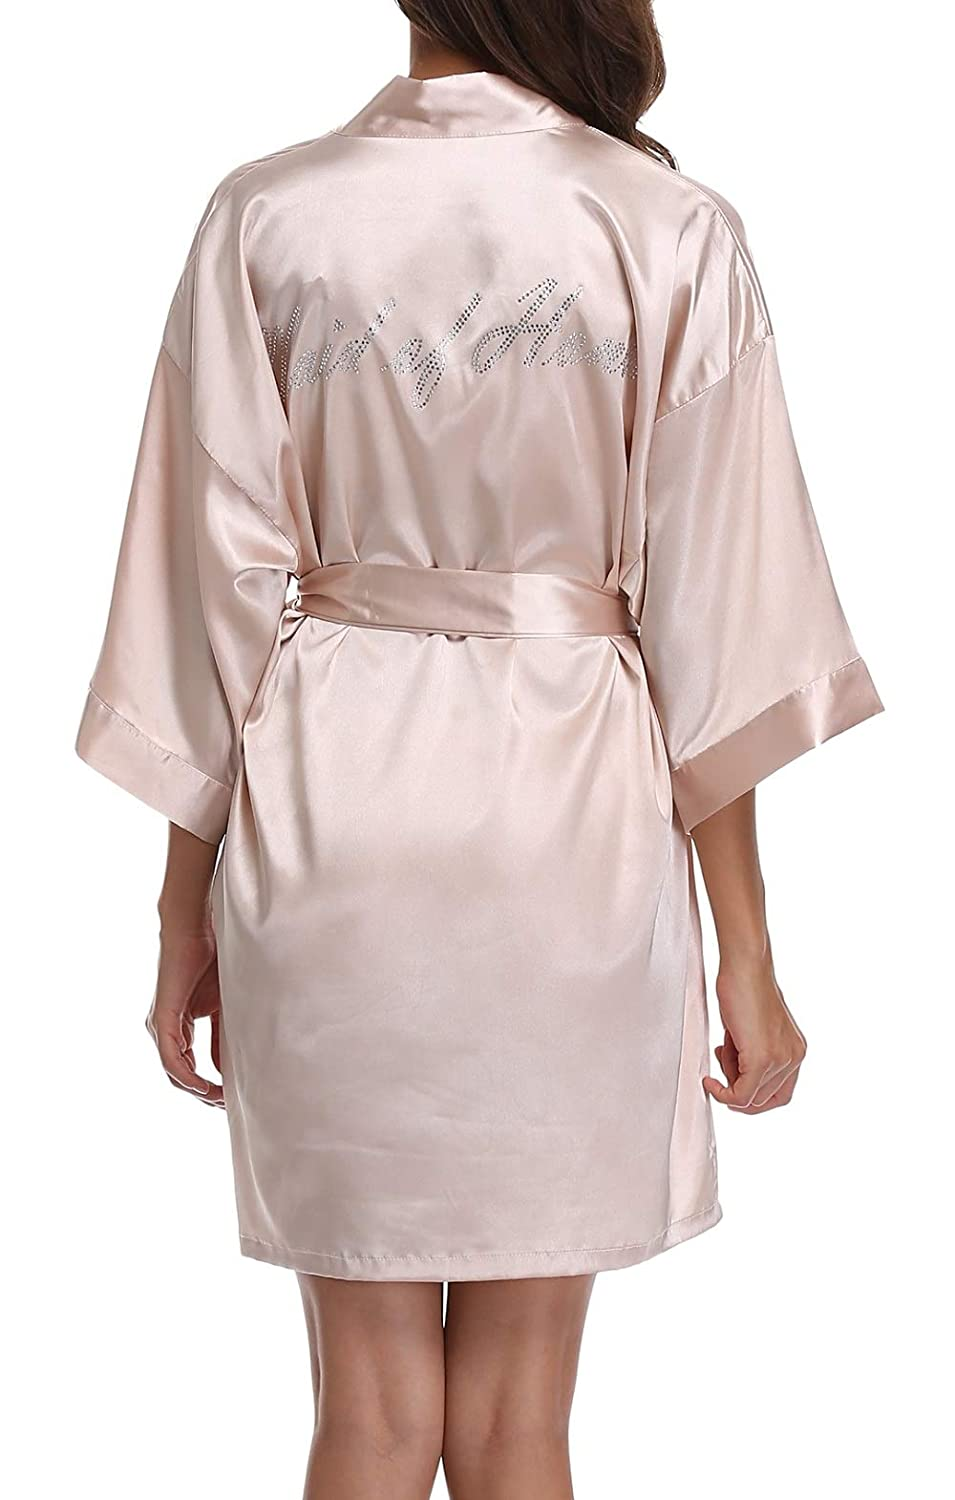 Champagne(maid of Honor) FADSHOW Bridal Robes Wedding Dressing Gowns with Rhinestones for Bride and Bridesmaids